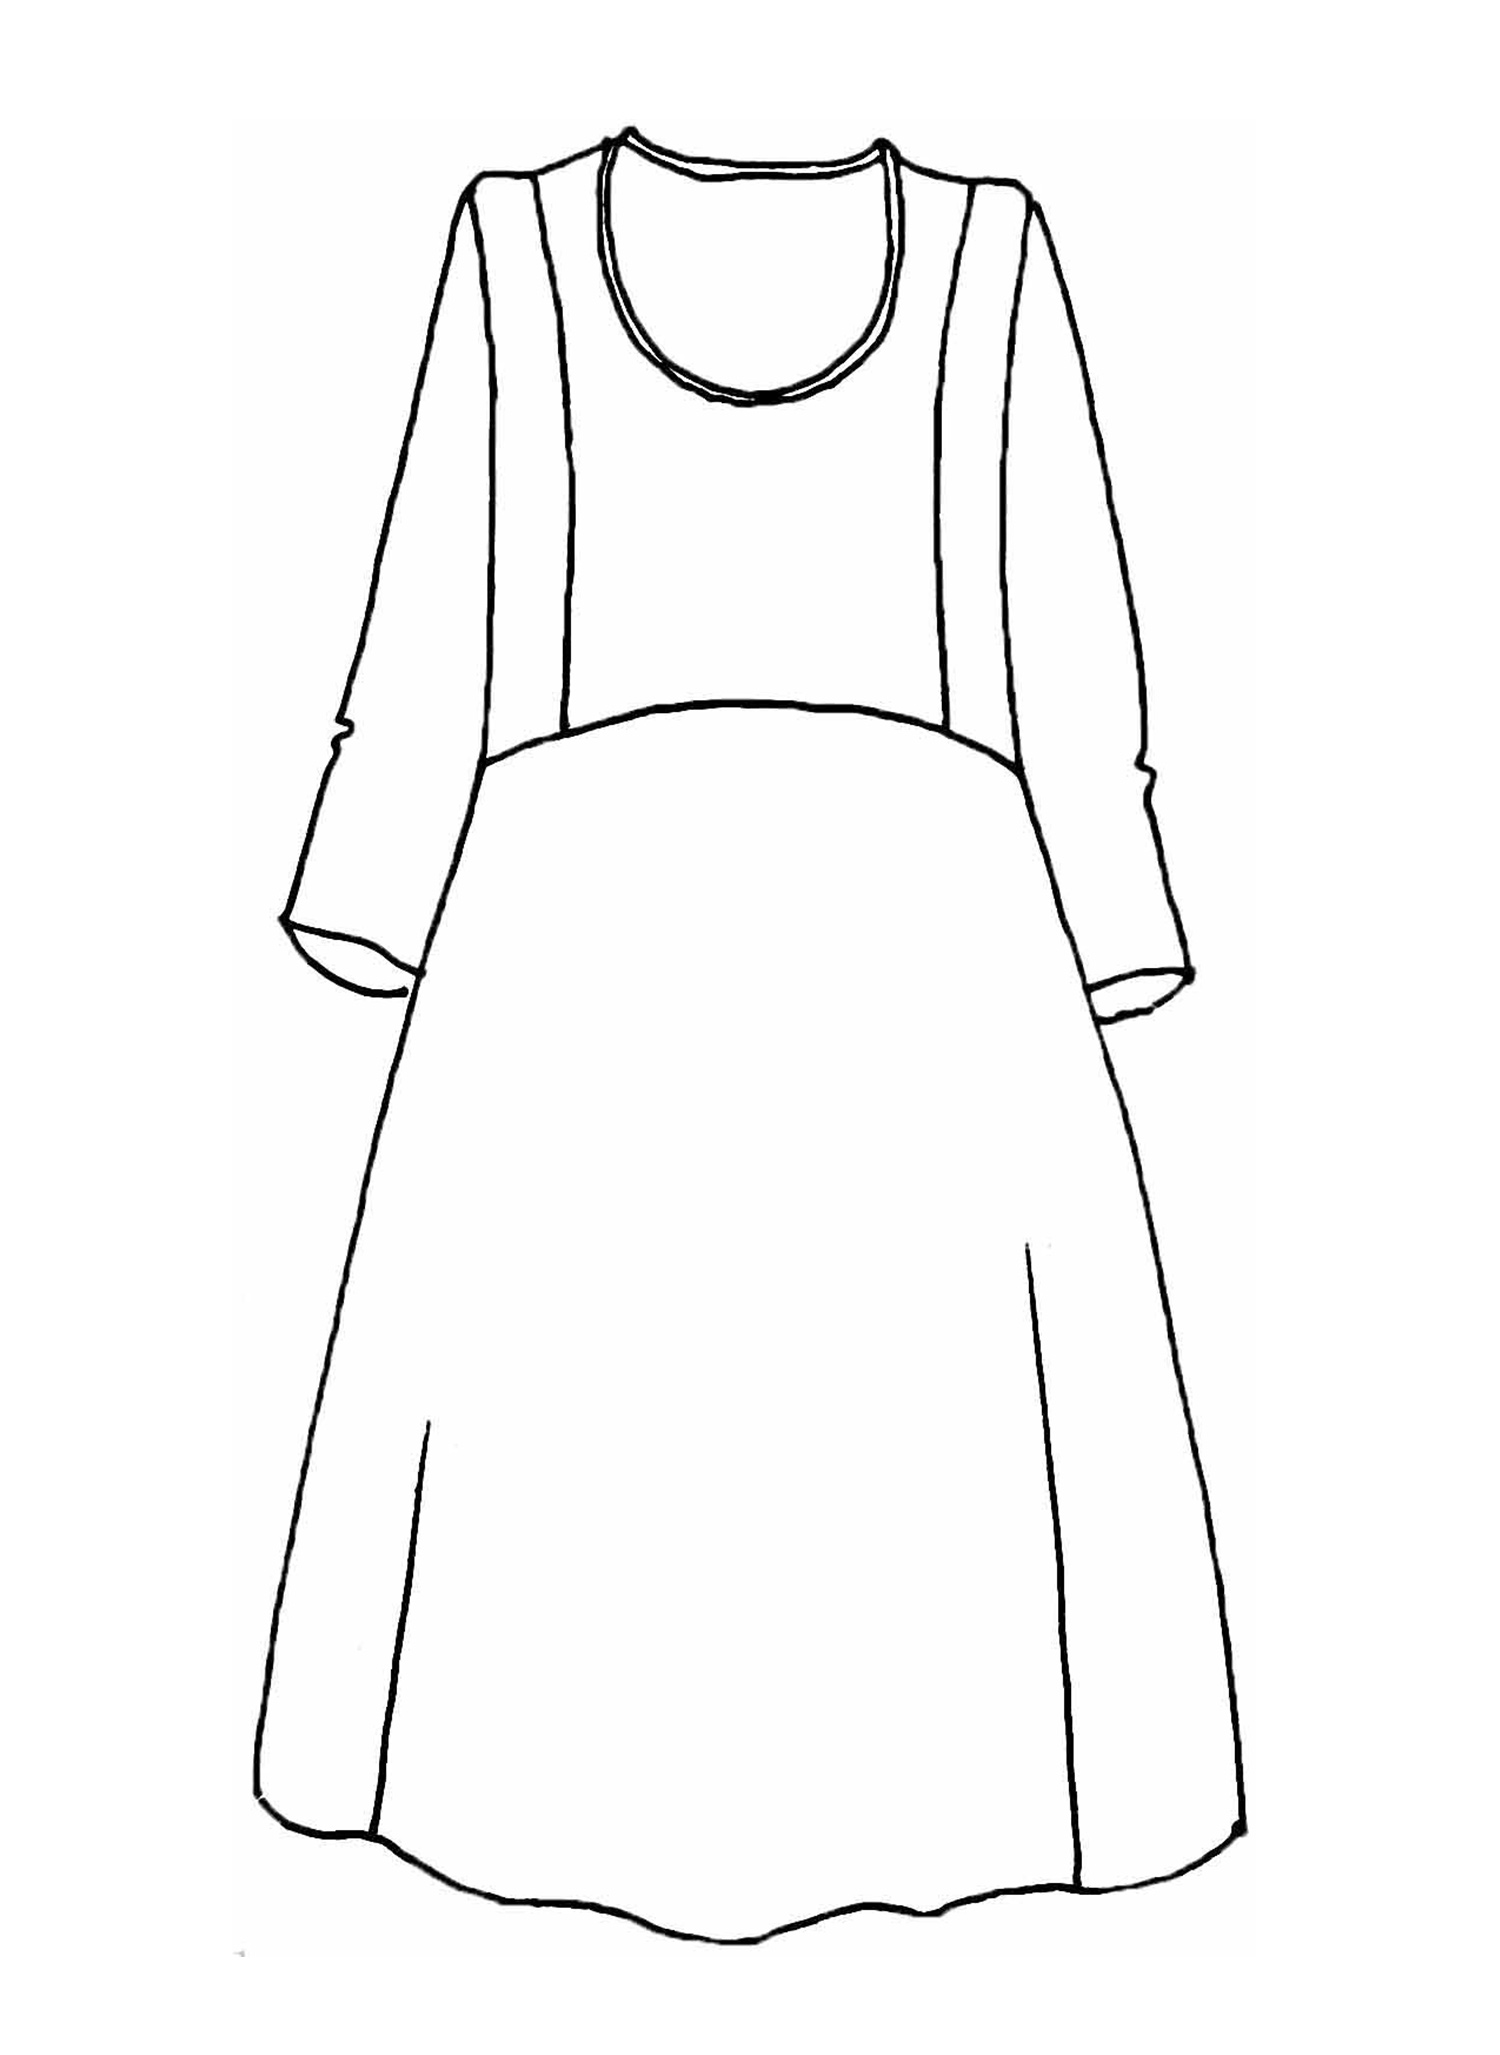 Angle Dress sketch image